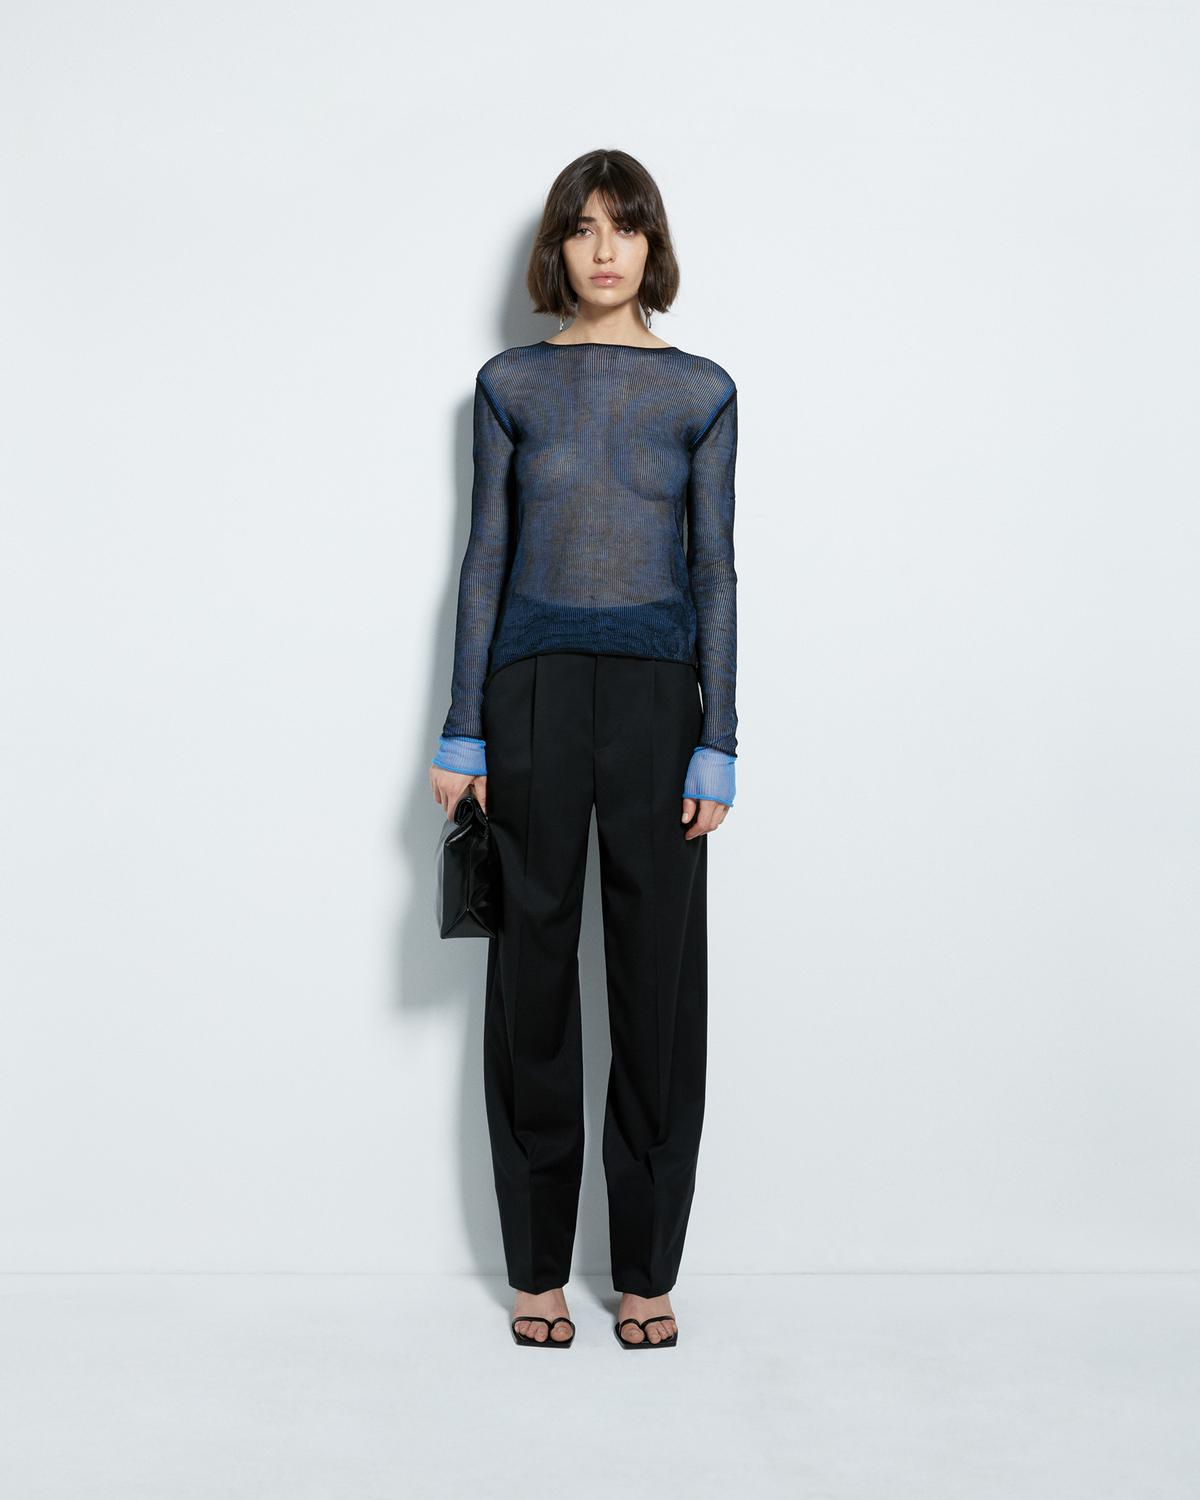 SHEER LAYER LONGSLEEVE